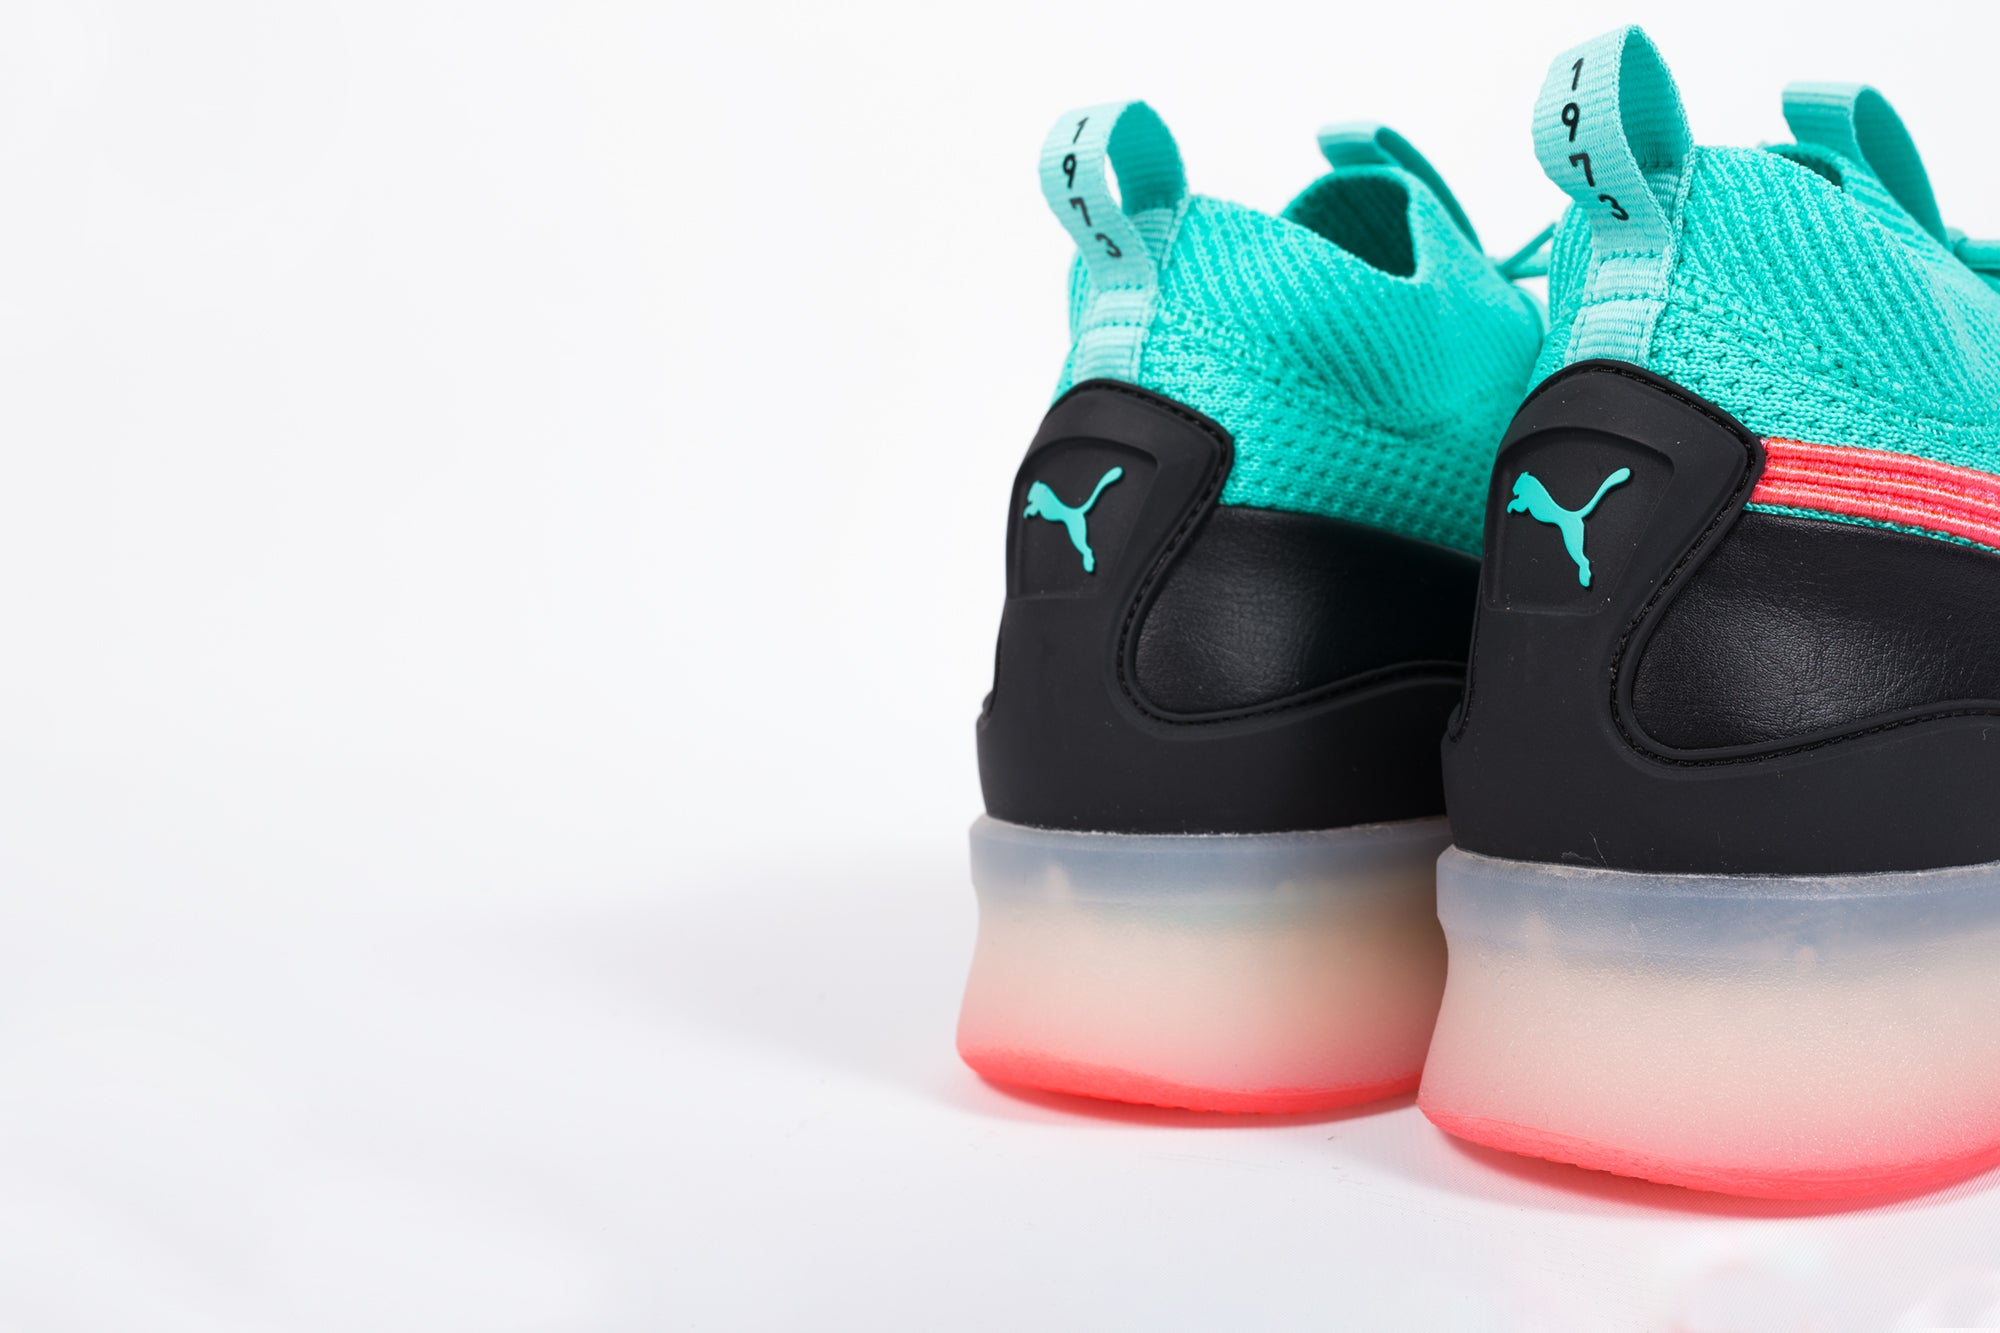 official photos ae61d d1ab0 PUMA CLYDE COURT DISRUPT